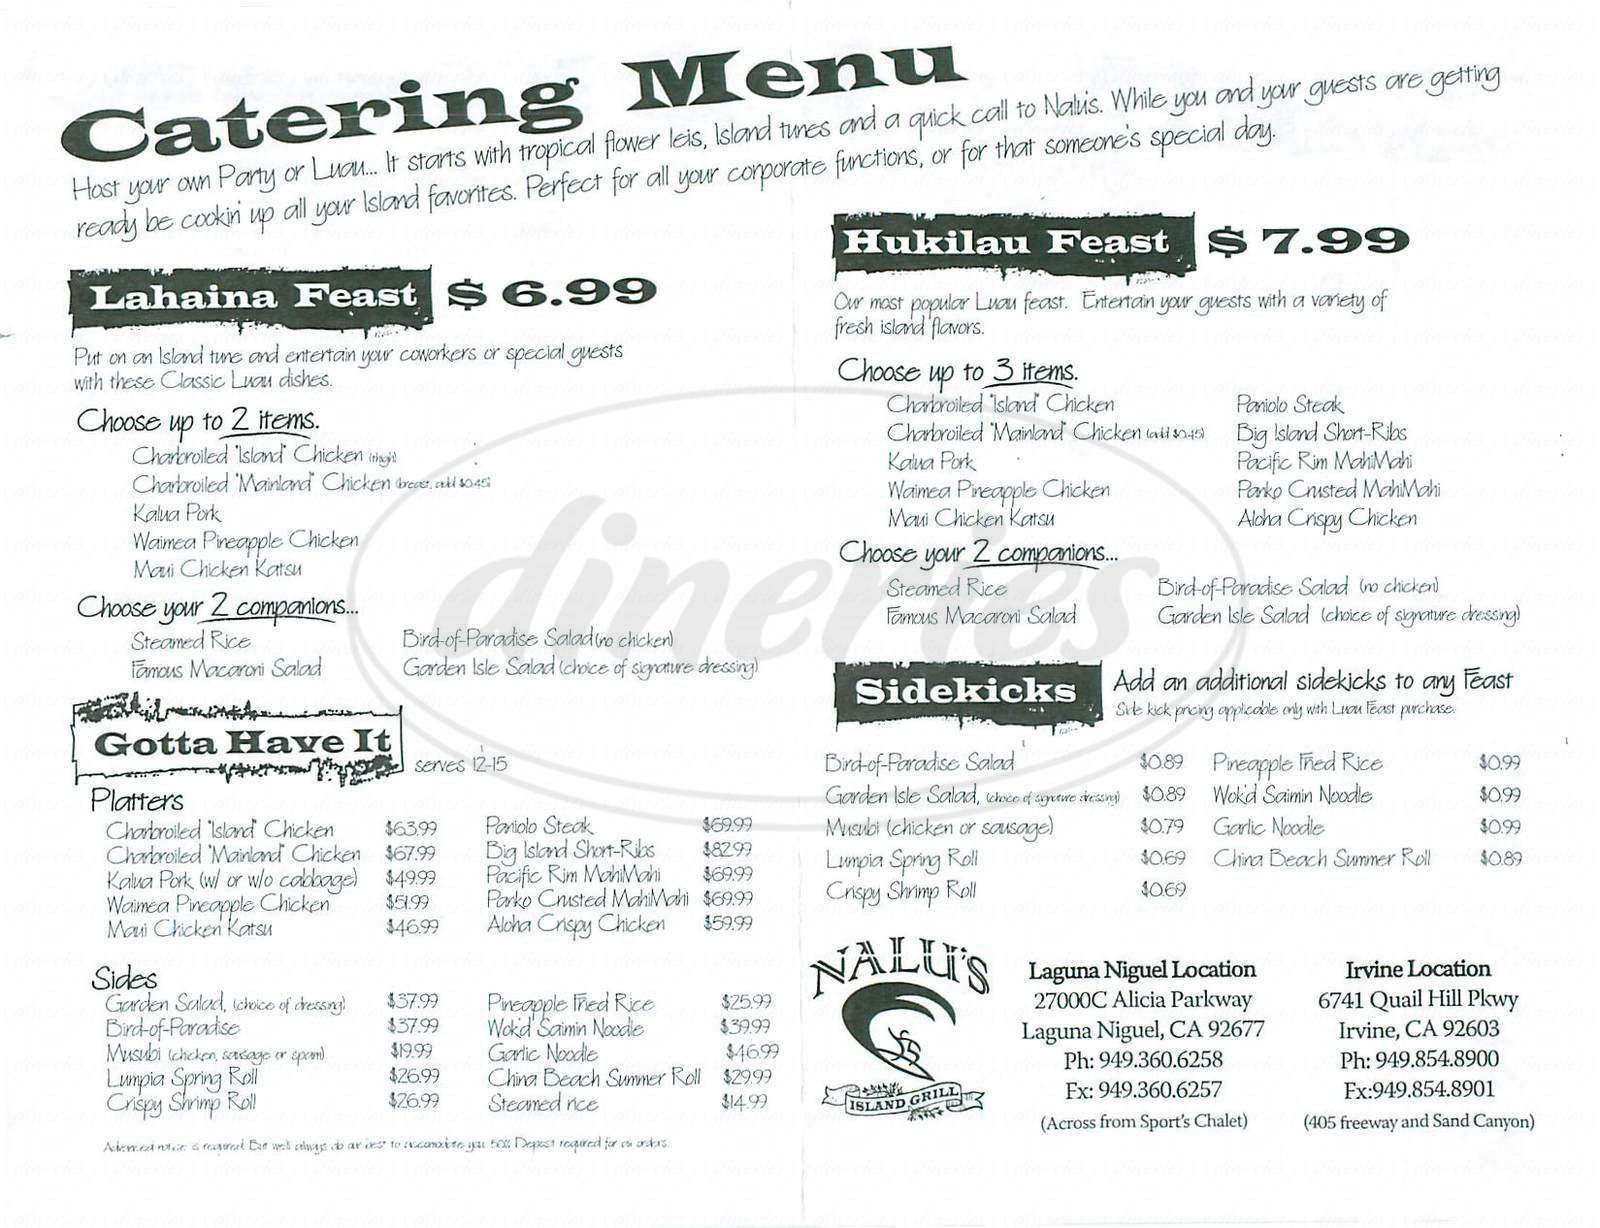 menu for Nalu's Island Grill